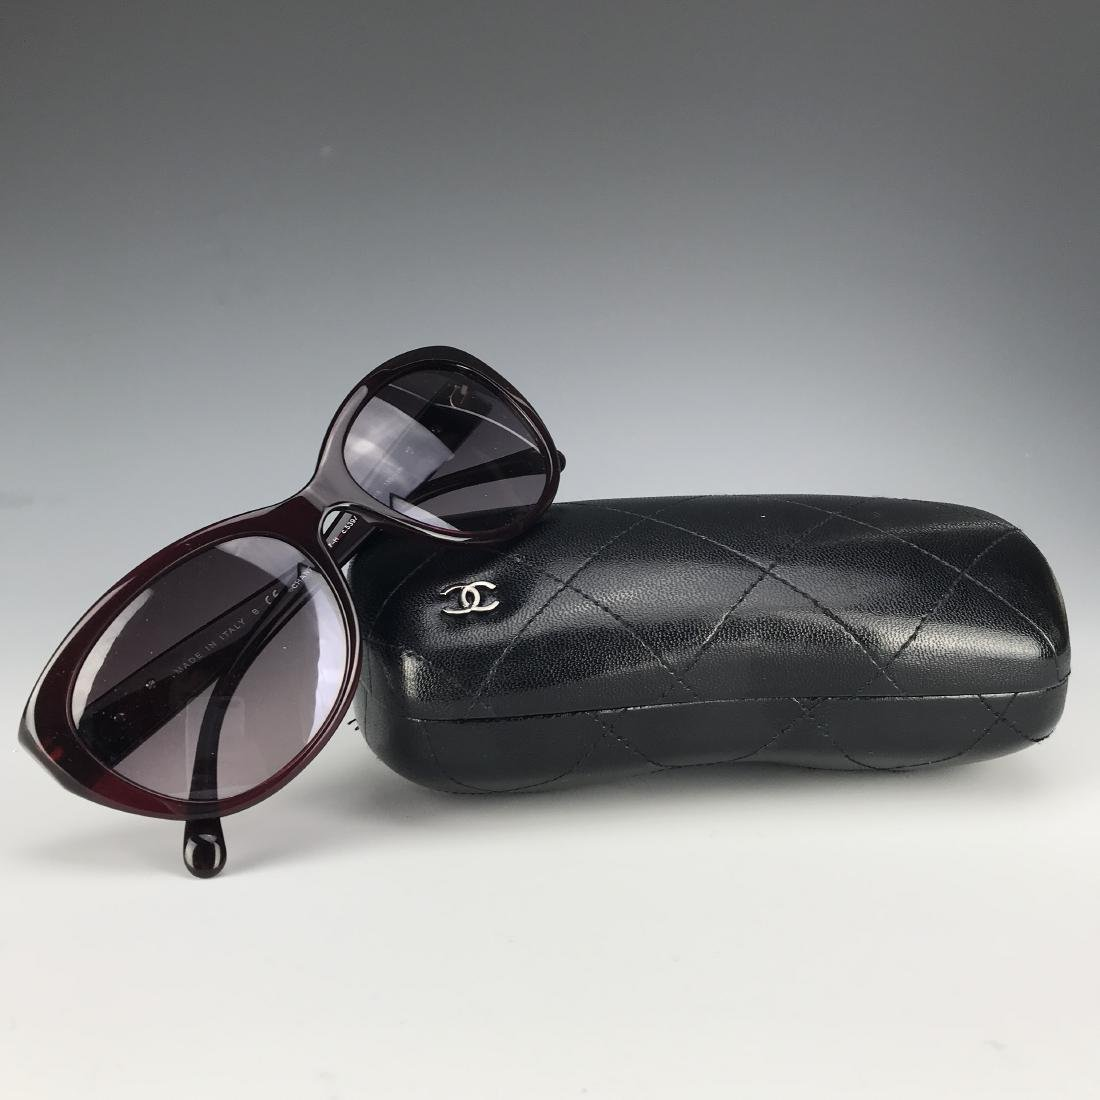 Authentic Chanel Black Sunglasses